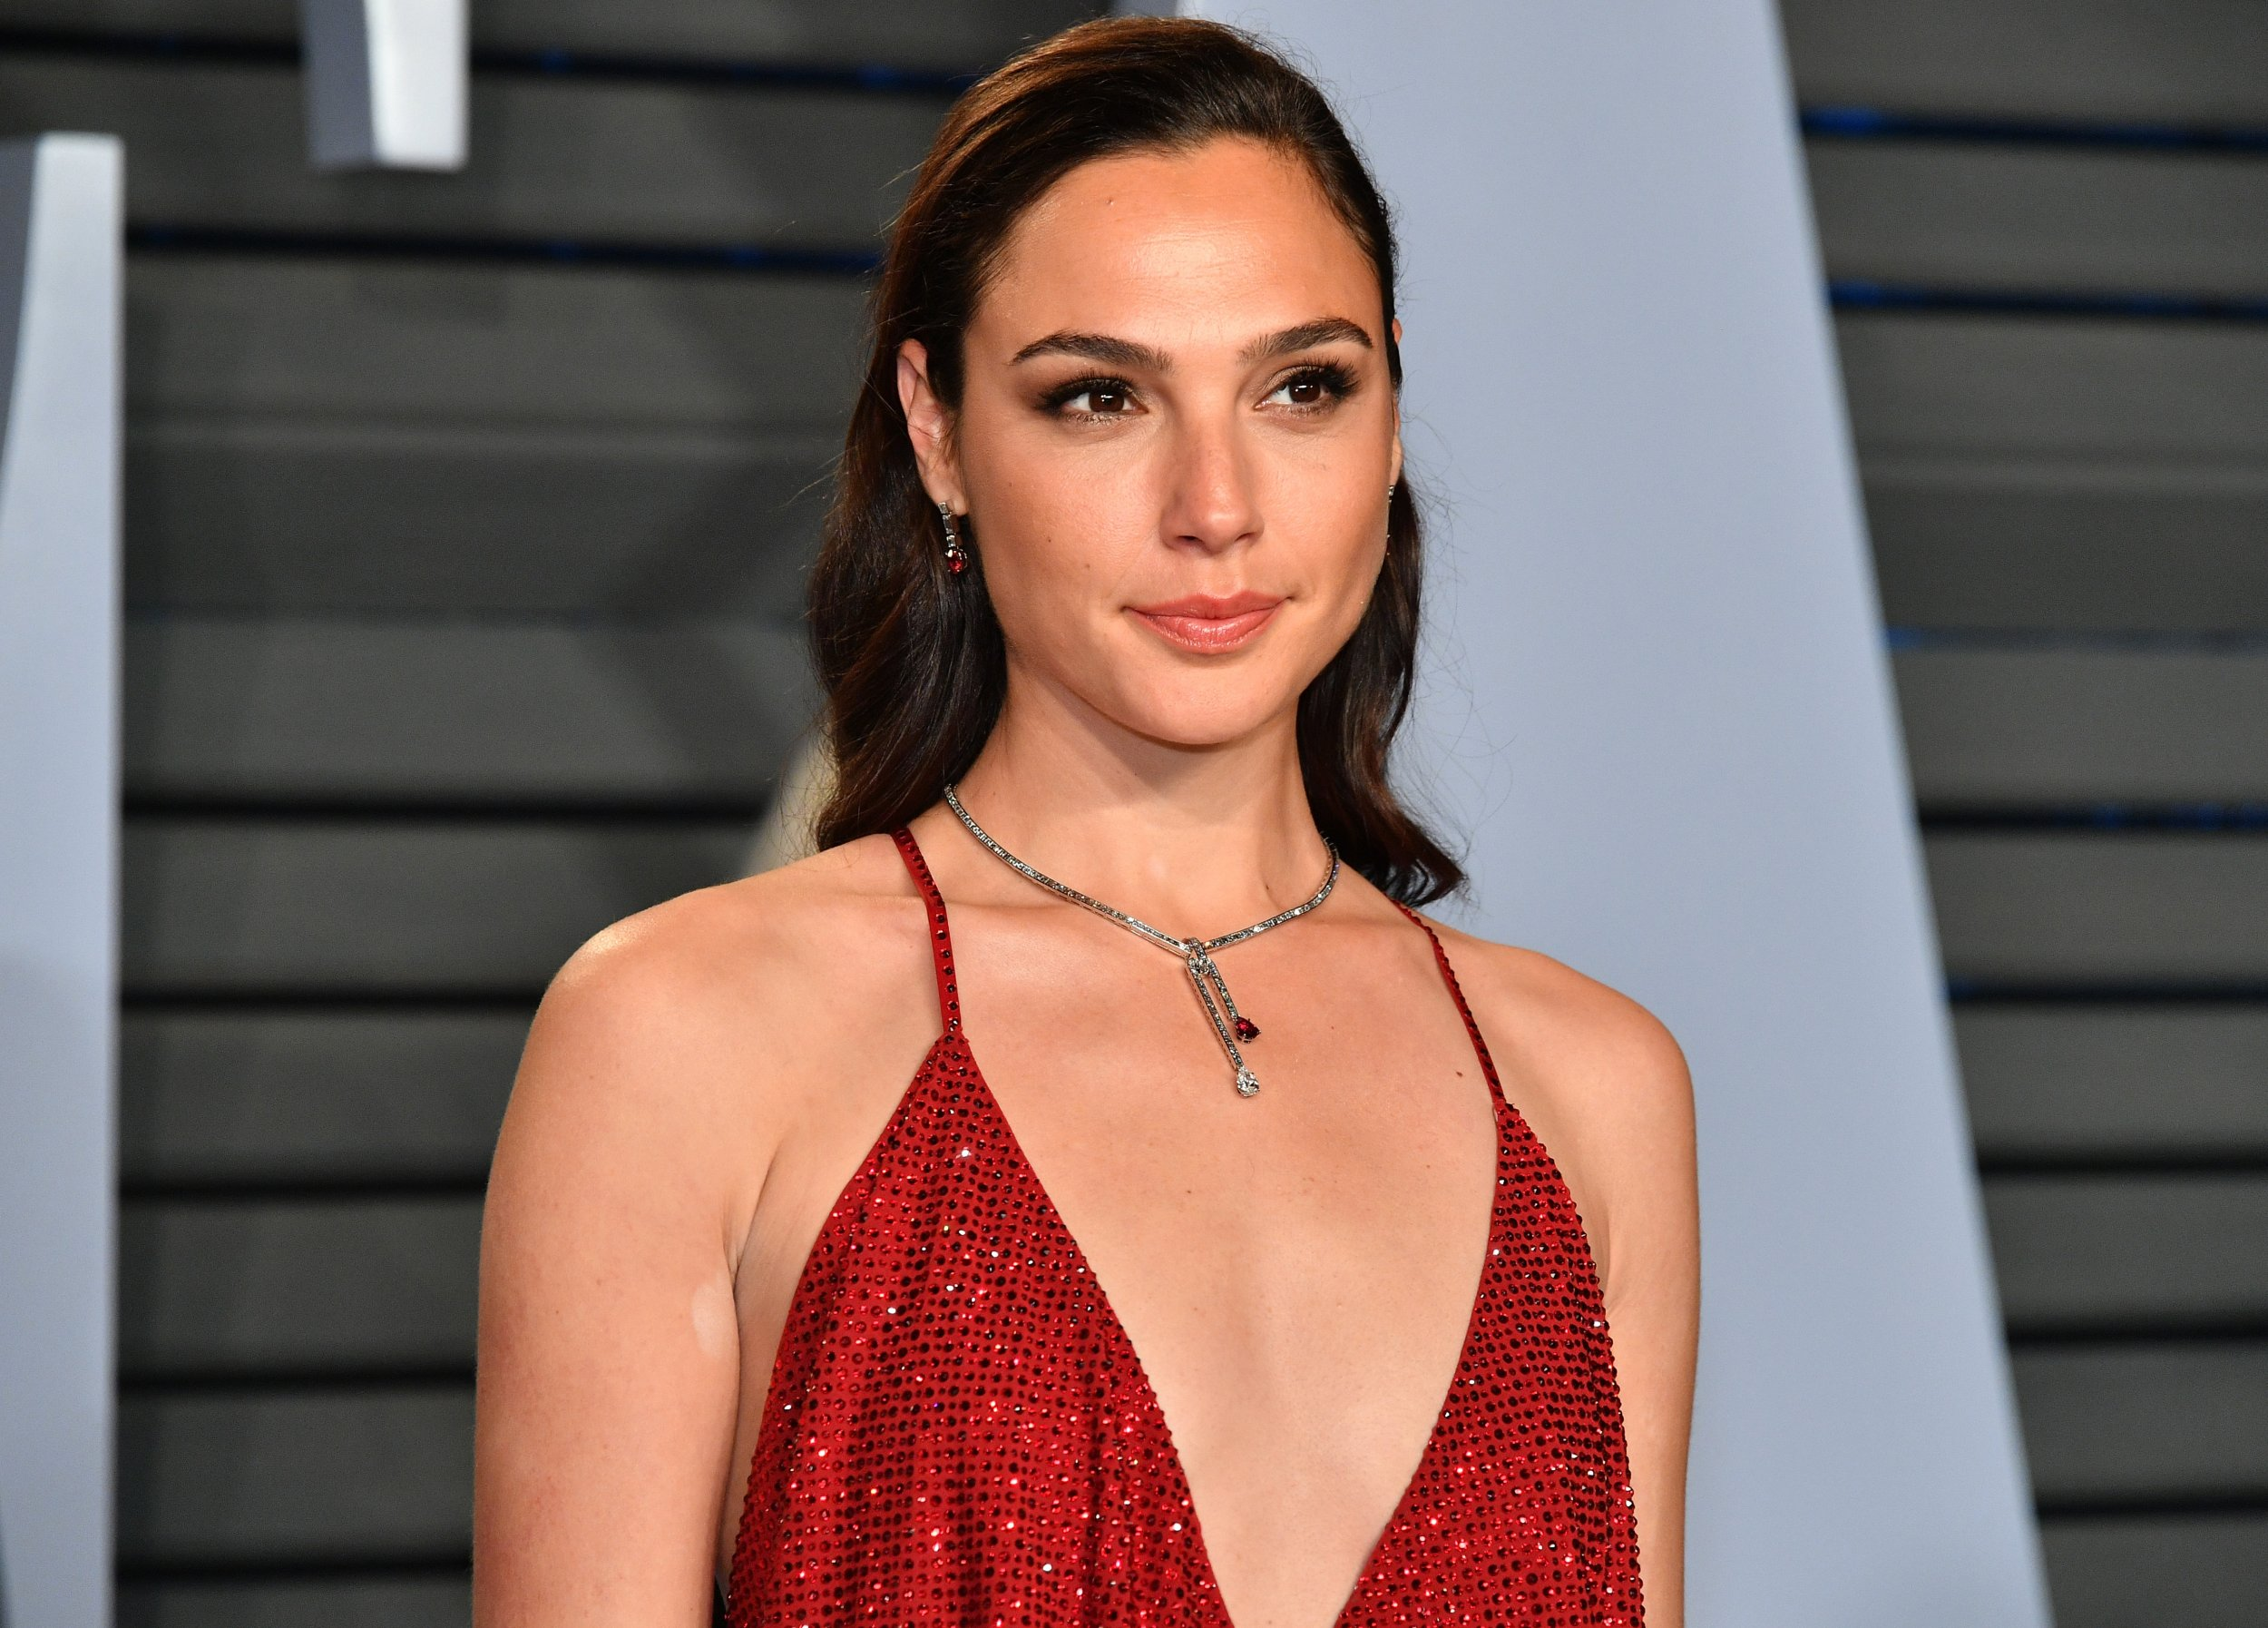 Was Cleopatra White? After Controversial Gal Gadot Casting, Four Experts Weigh In